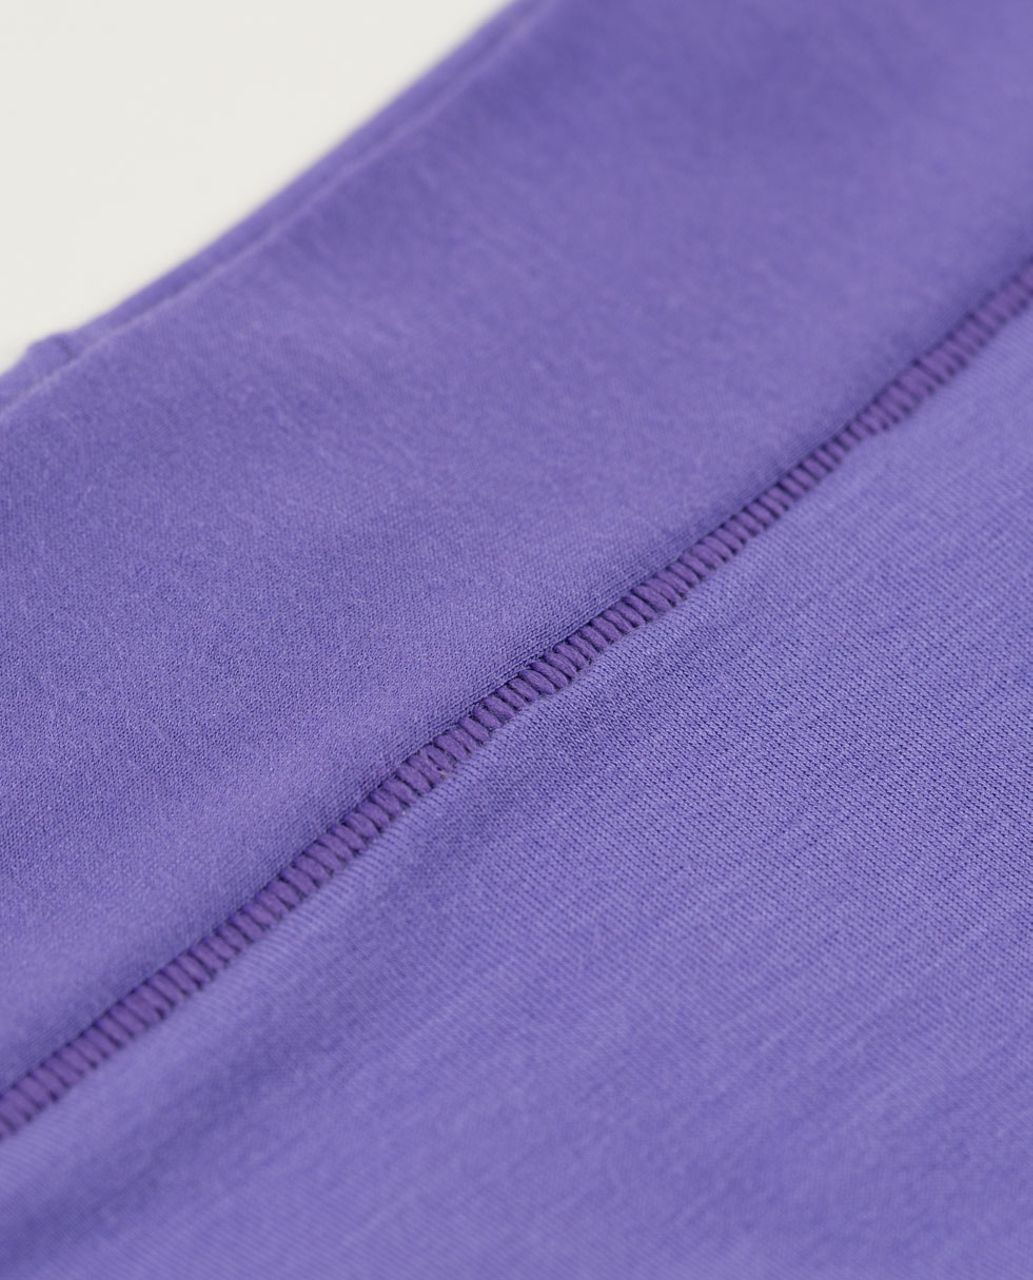 Lululemon Mula Bandhawear Thong - Power Purple